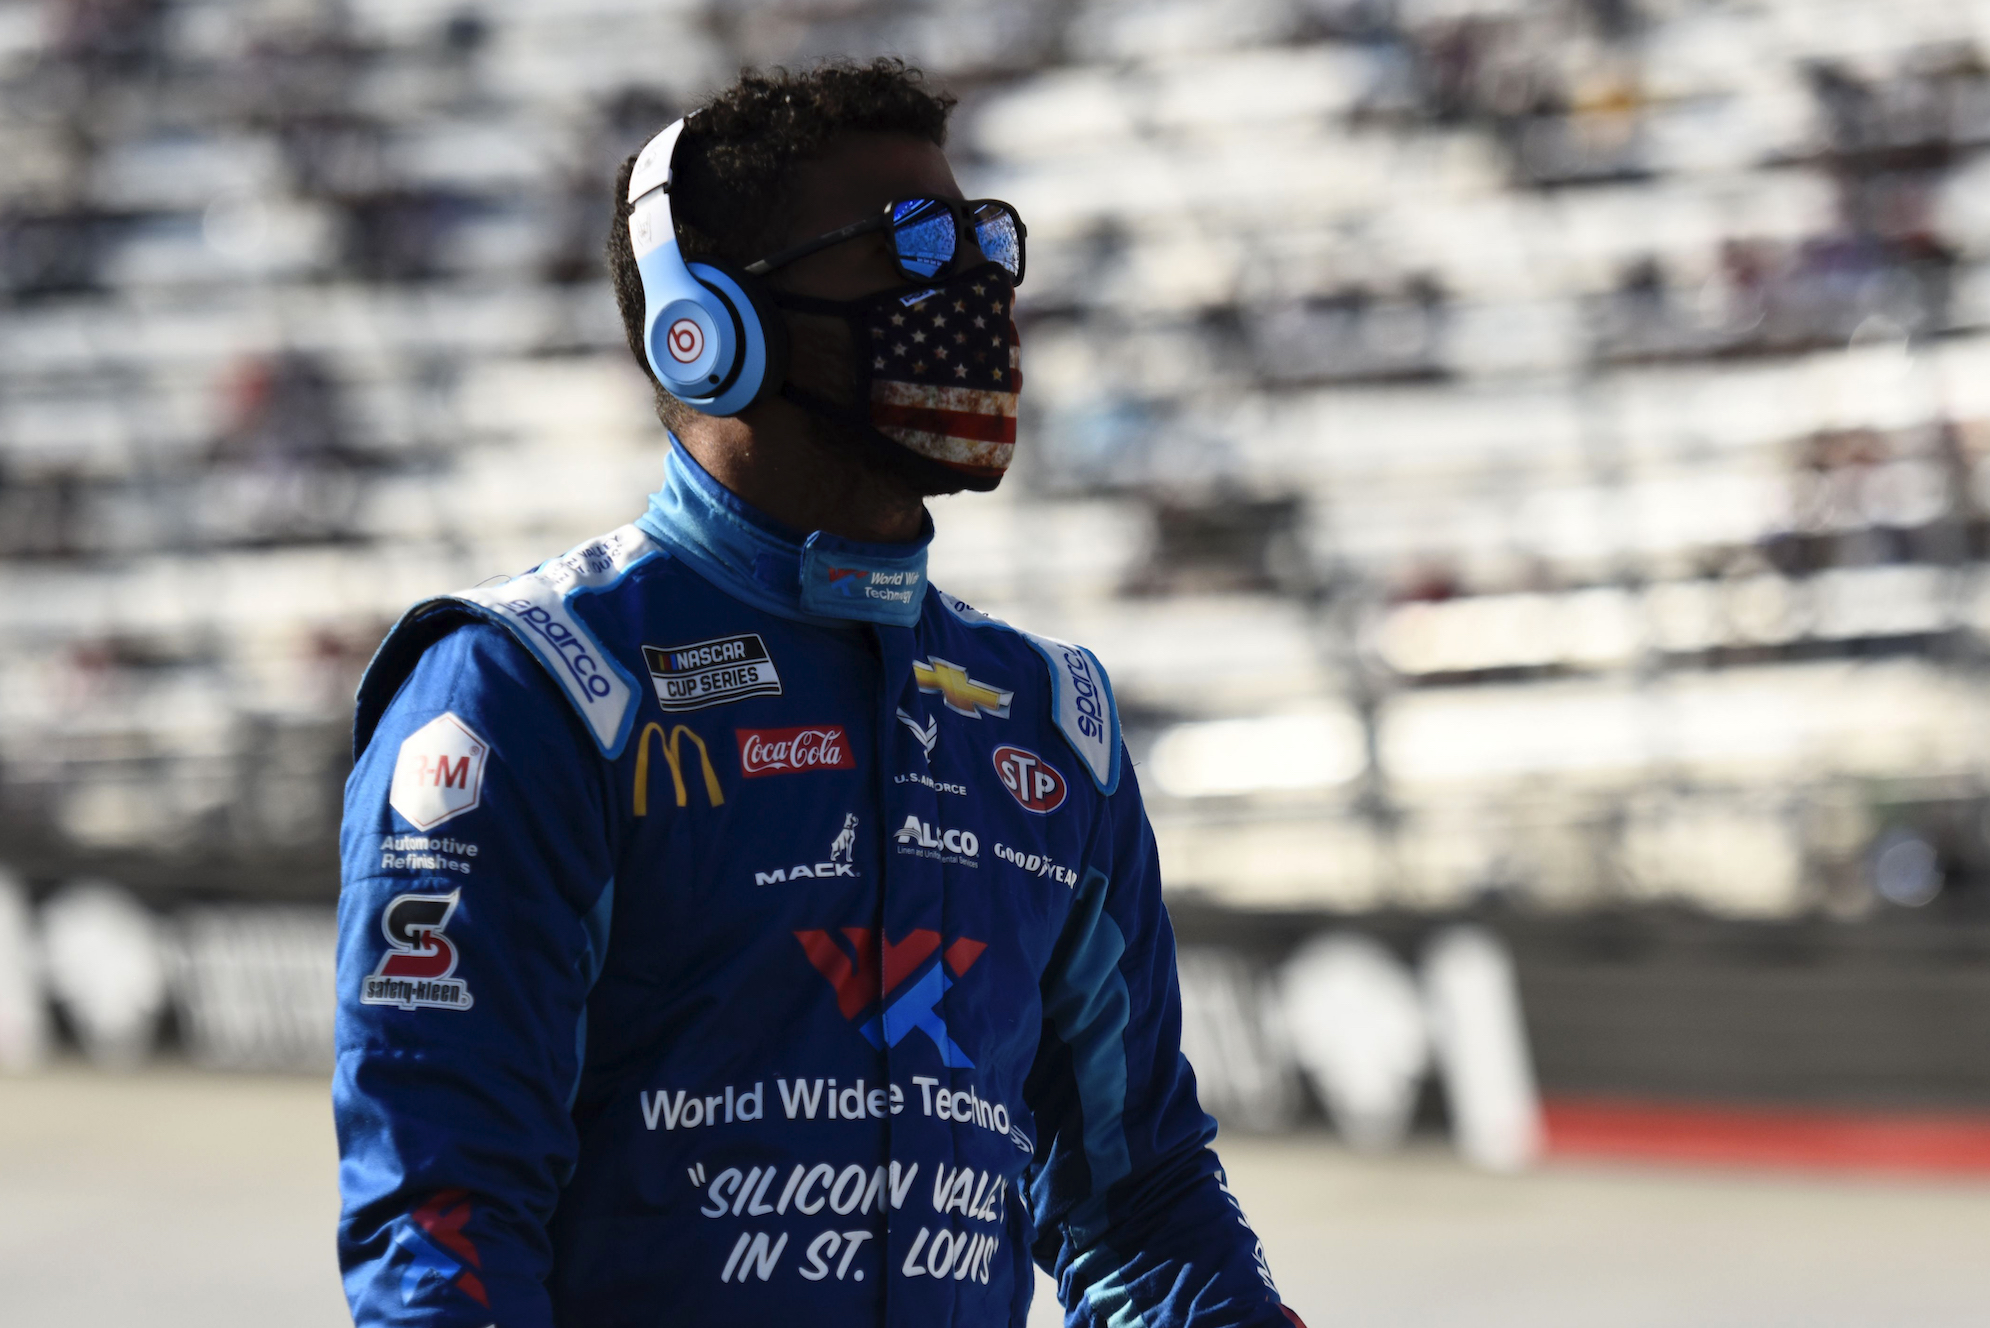 Bubba Wallace is not too happy after crashing out of the All-Star qualifying race and missing out on the chance to win $1.4 million.